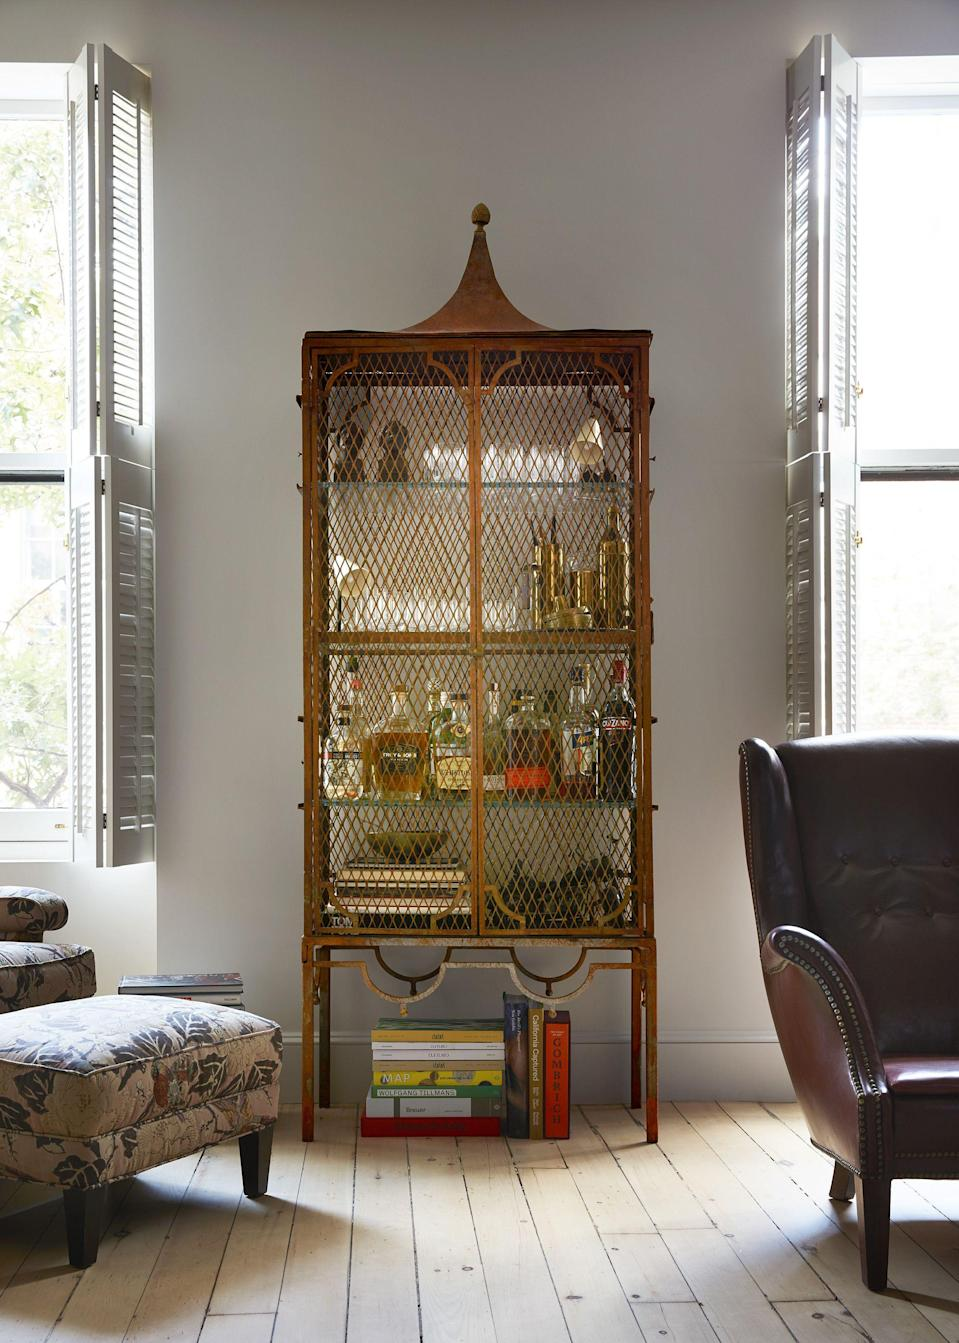 "<p>Bar carts have been all the rage for some time now, but if you really want to get serious on style and storage, bar cabinets are where it's at. Unlike a <a href=""https://www.housebeautiful.com/design-inspiration/a30120705/how-to-style-bar-cart/"" rel=""nofollow noopener"" target=""_blank"" data-ylk=""slk:bar cart"" class=""link rapid-noclick-resp"">bar cart</a>, a bar cabinet gives you the space to store bottles of wine and liquor (and glassware, and bar tools!) behind closed doors so they're not <em>always</em> on display—and since there are tons of statement bar cabinets out there, you can stash away your <a href=""https://www.housebeautiful.com/room-decorating/g1310/home-bar-design-ideas-1012/"" rel=""nofollow noopener"" target=""_blank"" data-ylk=""slk:home bar"" class=""link rapid-noclick-resp"">home bar</a> needs in a piece that stuns all on its own. </p><p>Tall bar cabinets help you take advantage of vertical space, while lower profile options double as a spot to lean art and display objets. They may not be on wheels like bar carts, but you can't say they're not practical! The best part? You'll feel like a character on <em>Mad Men</em> every time you mix up a new drink. Your burgeoning bartending hobby just got so much cooler. </p>"